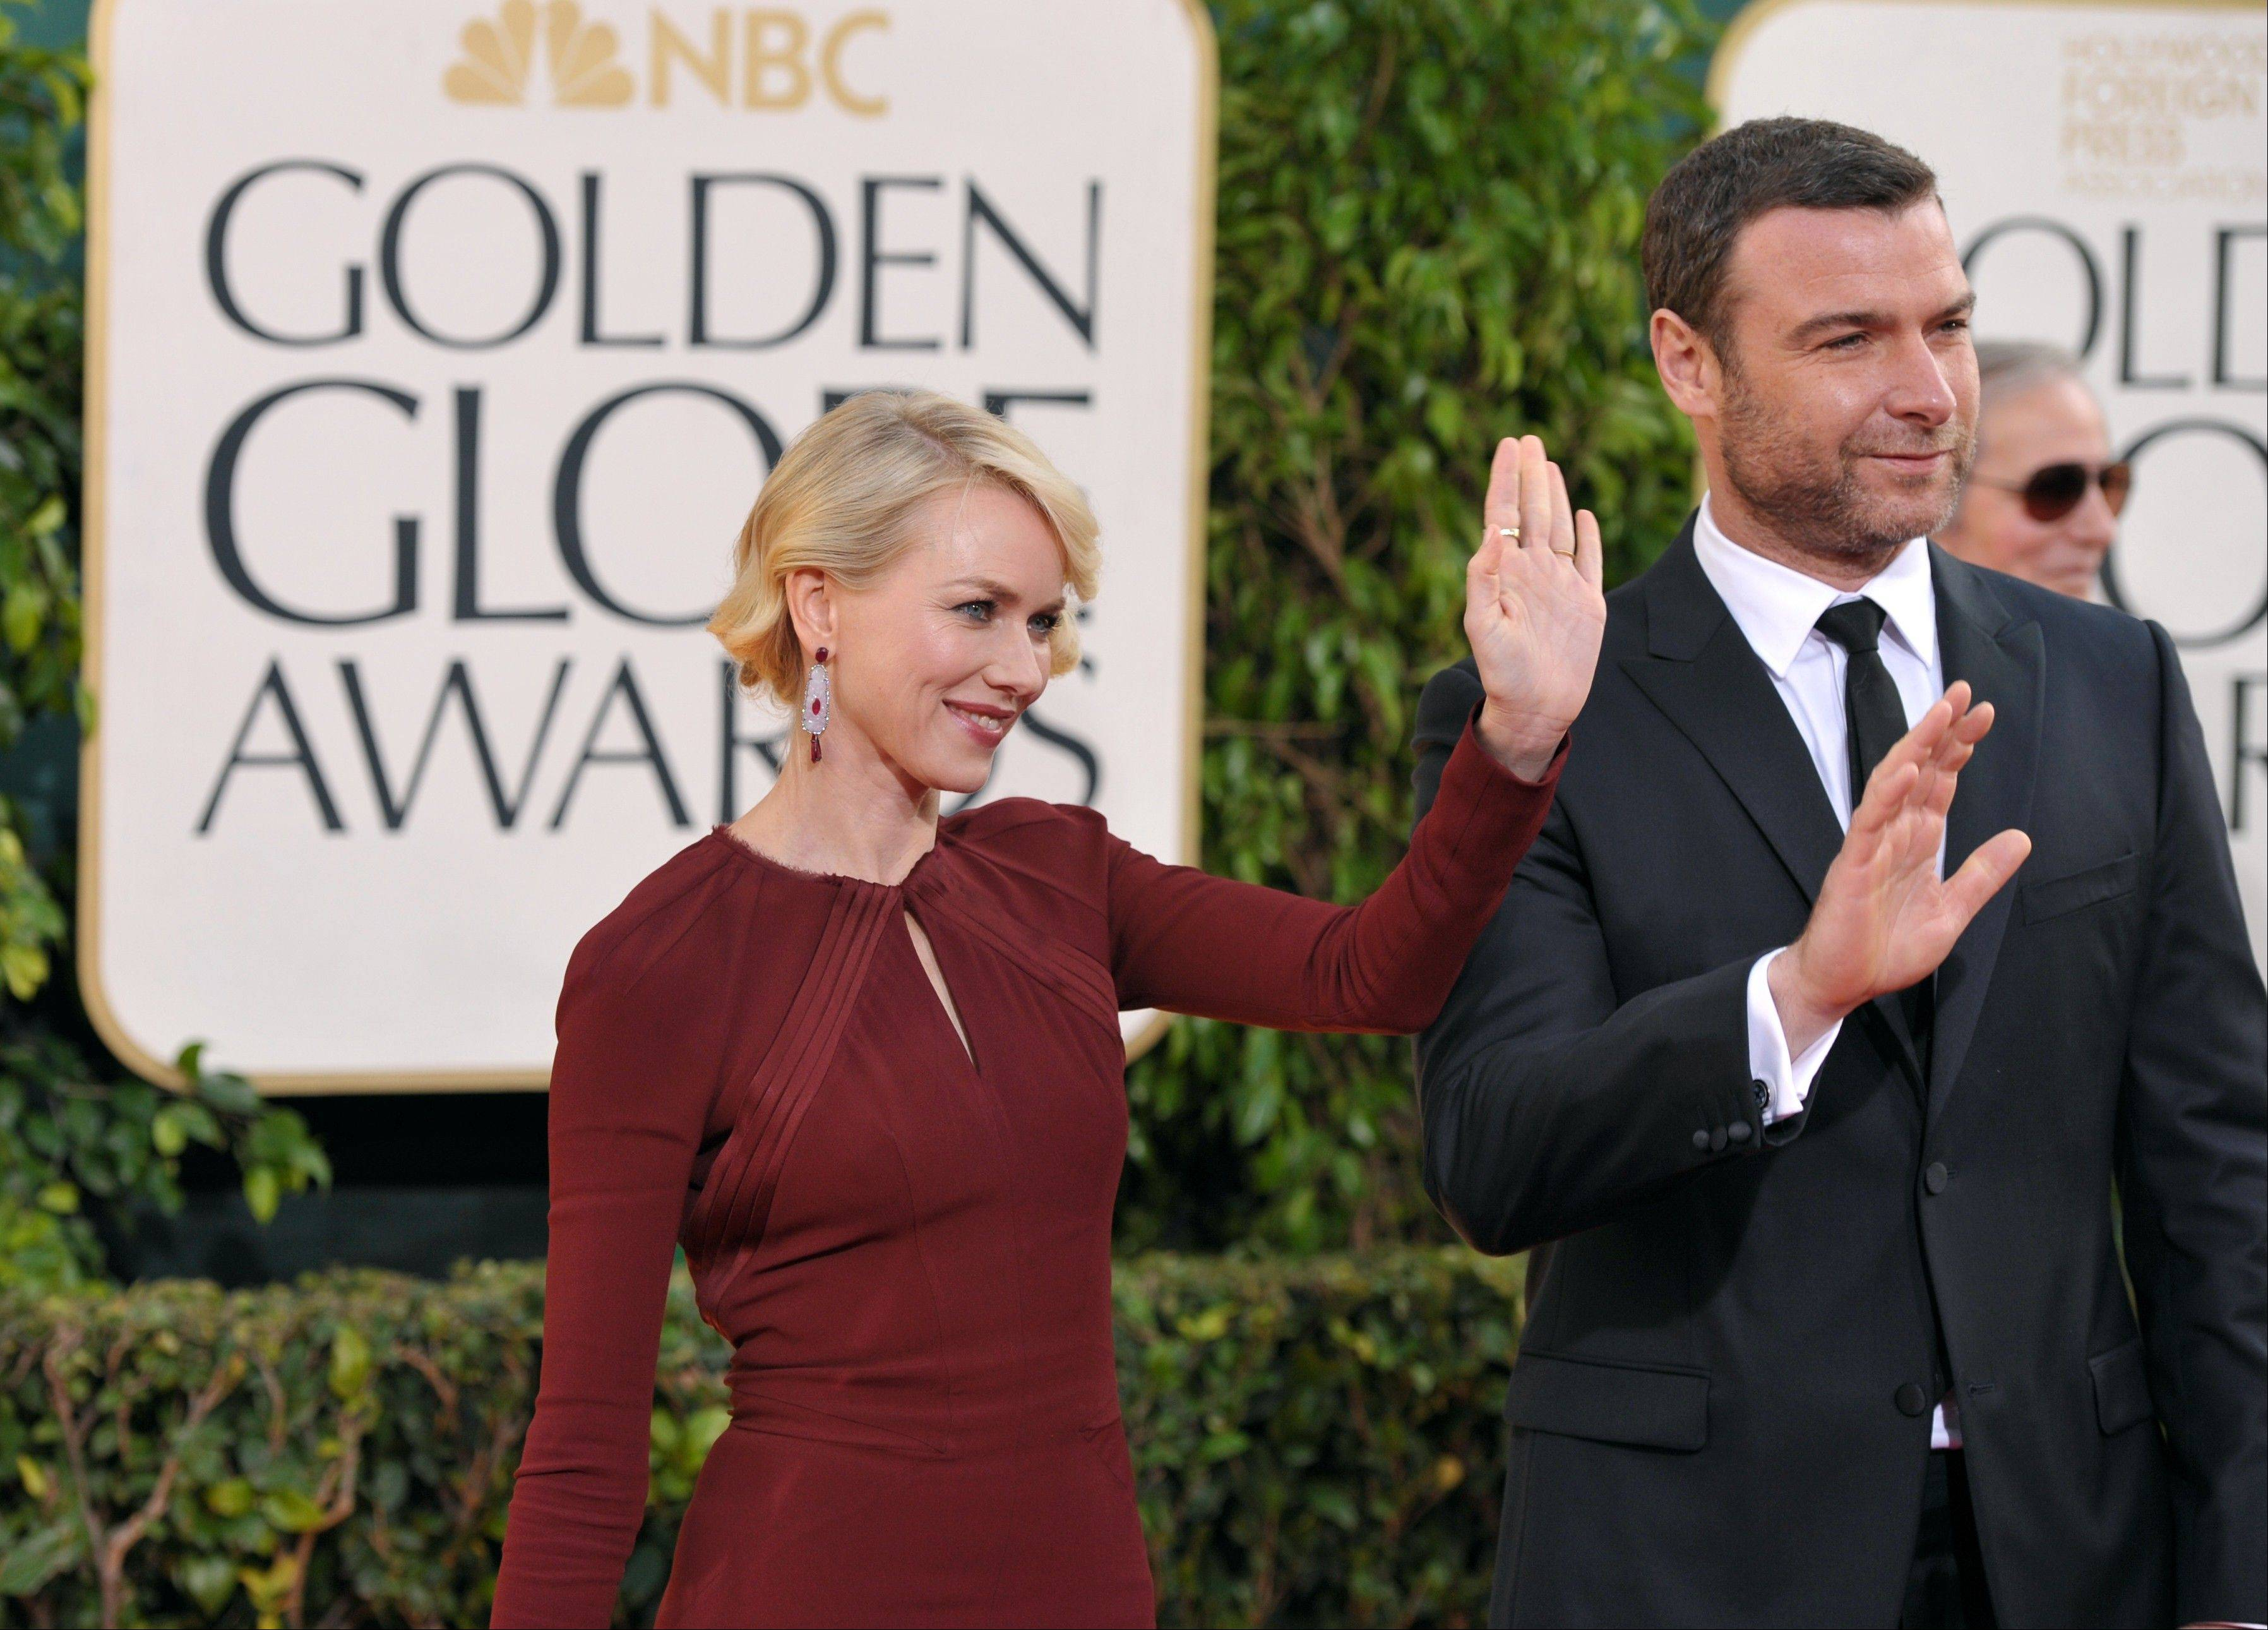 Actors Naomi Watts and Liev Schreiber arrive at the 70th Annual Golden Globe Awards at the Beverly Hilton Hotel on Sunday Jan. 13, 2013, in Beverly Hills, Calif.